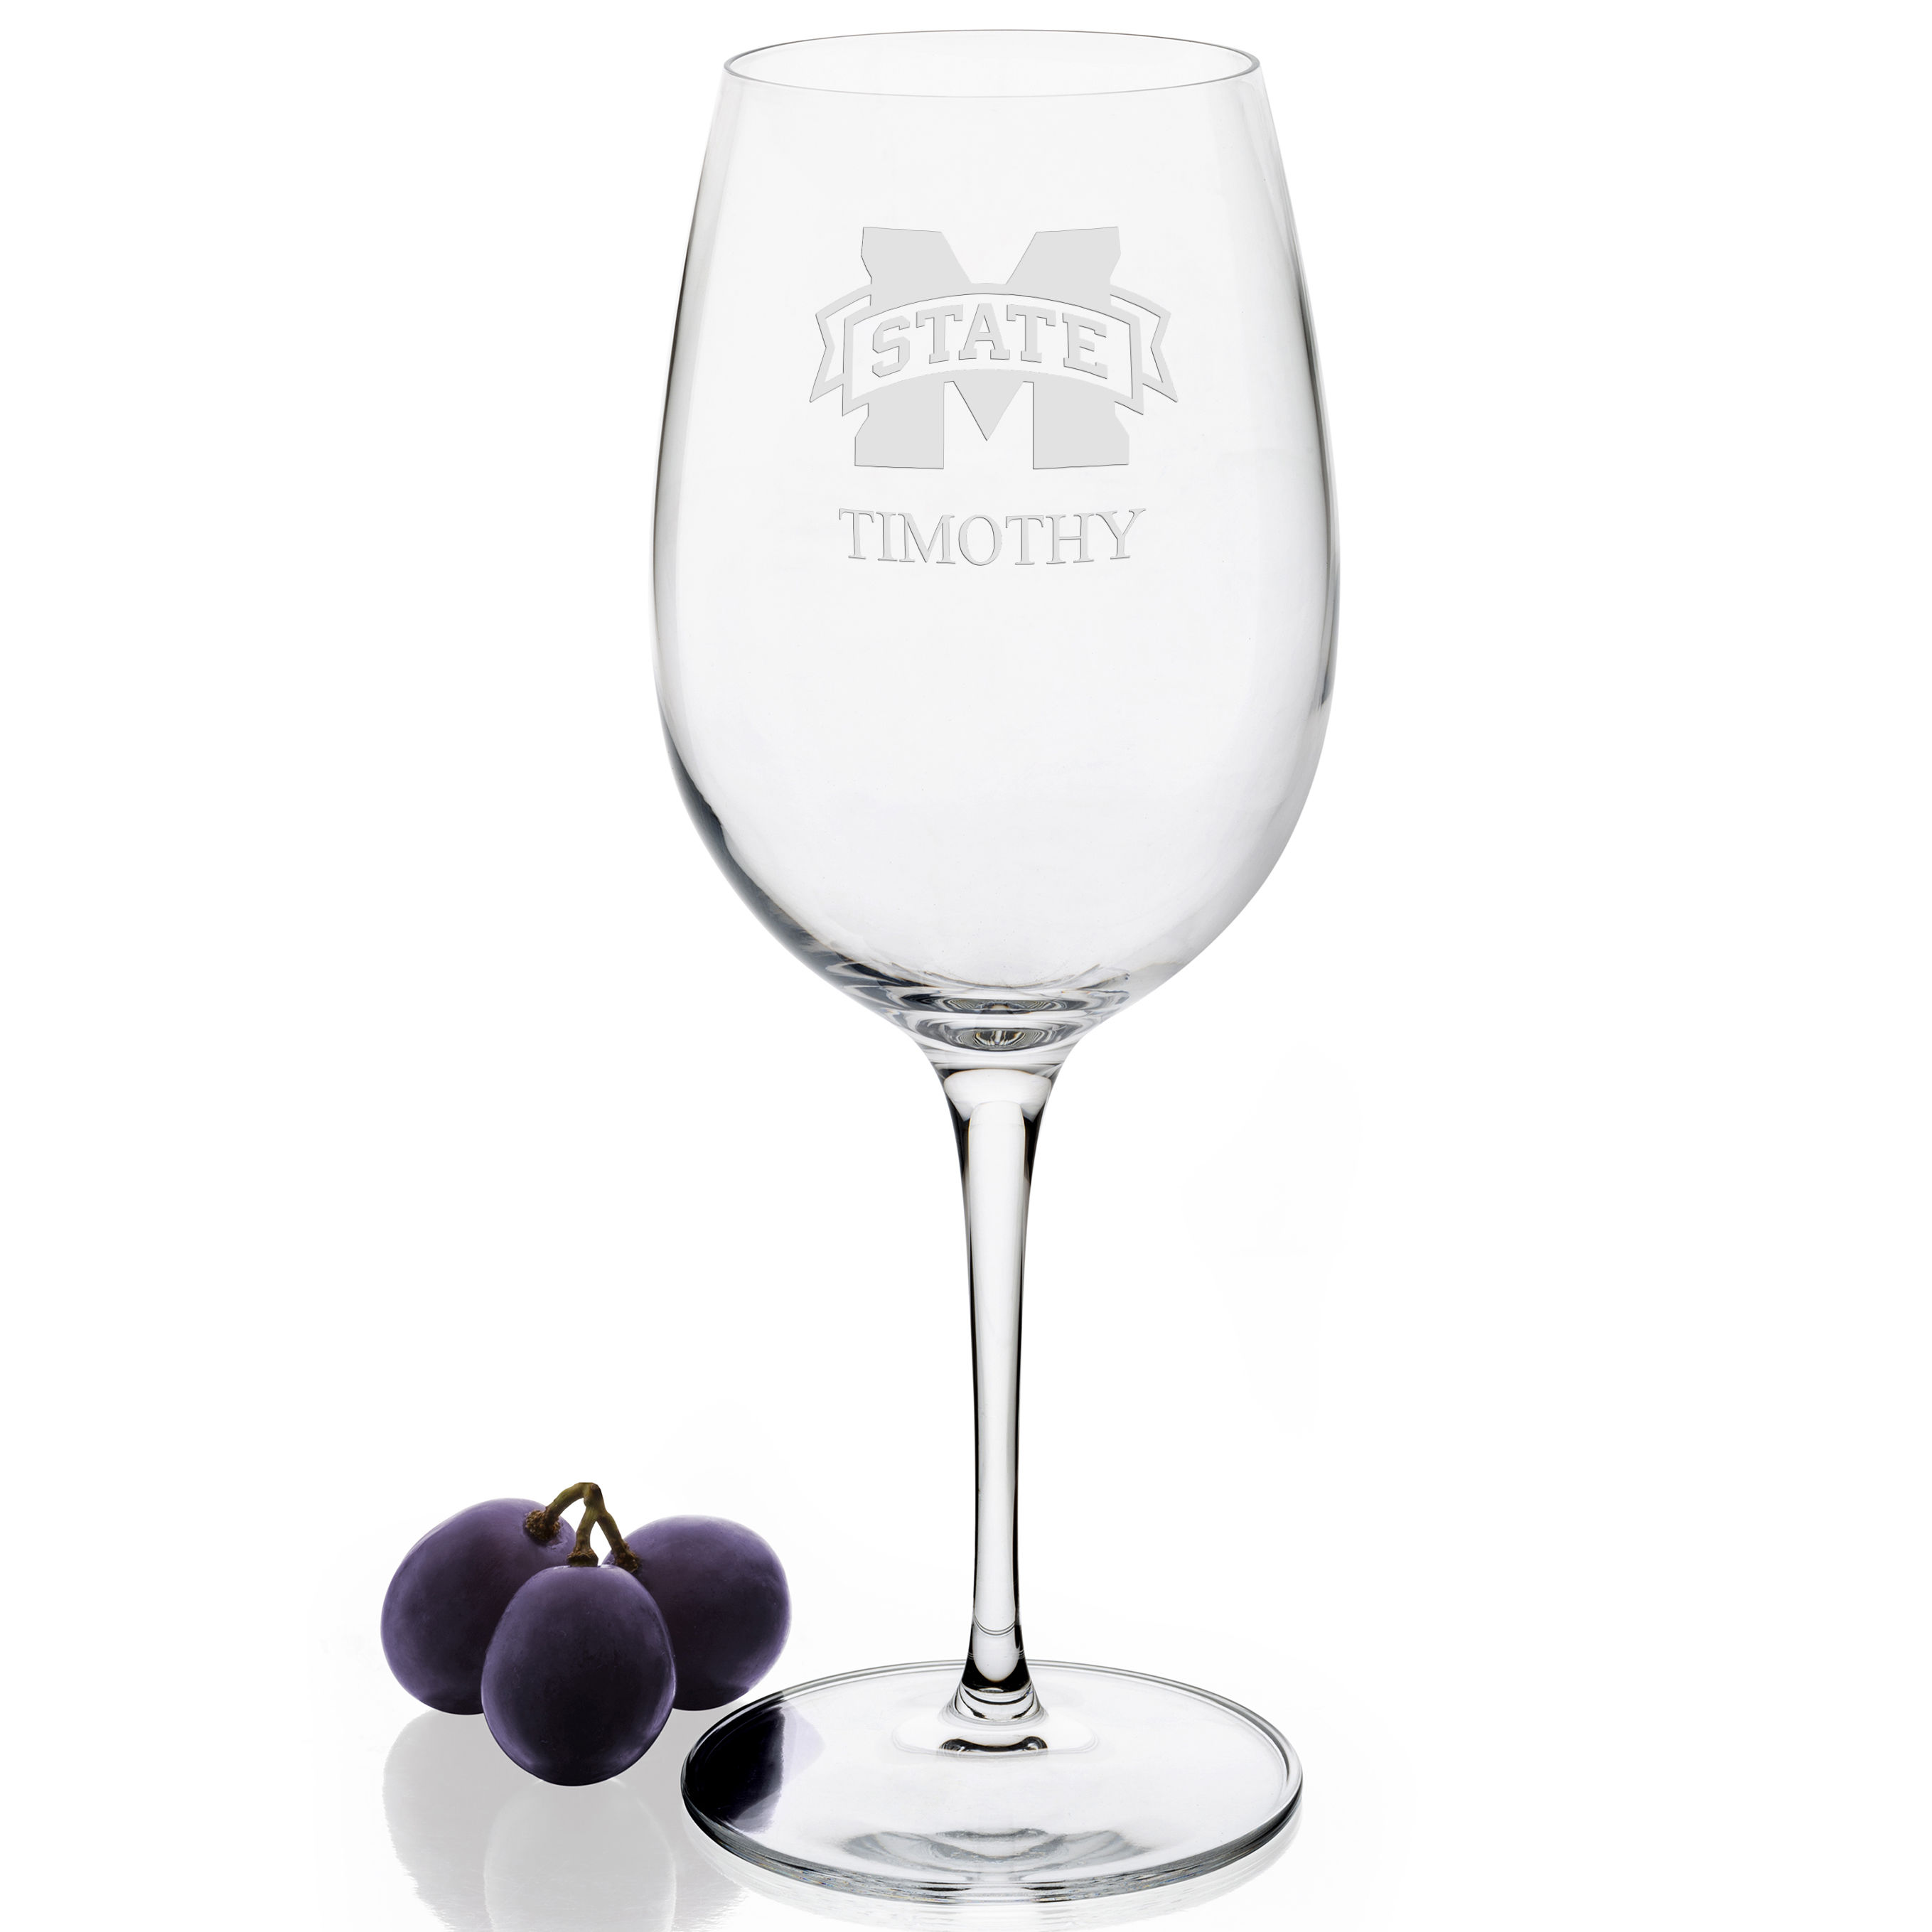 Mississippi State Red Wine Glasses - Set of 4 - Image 2